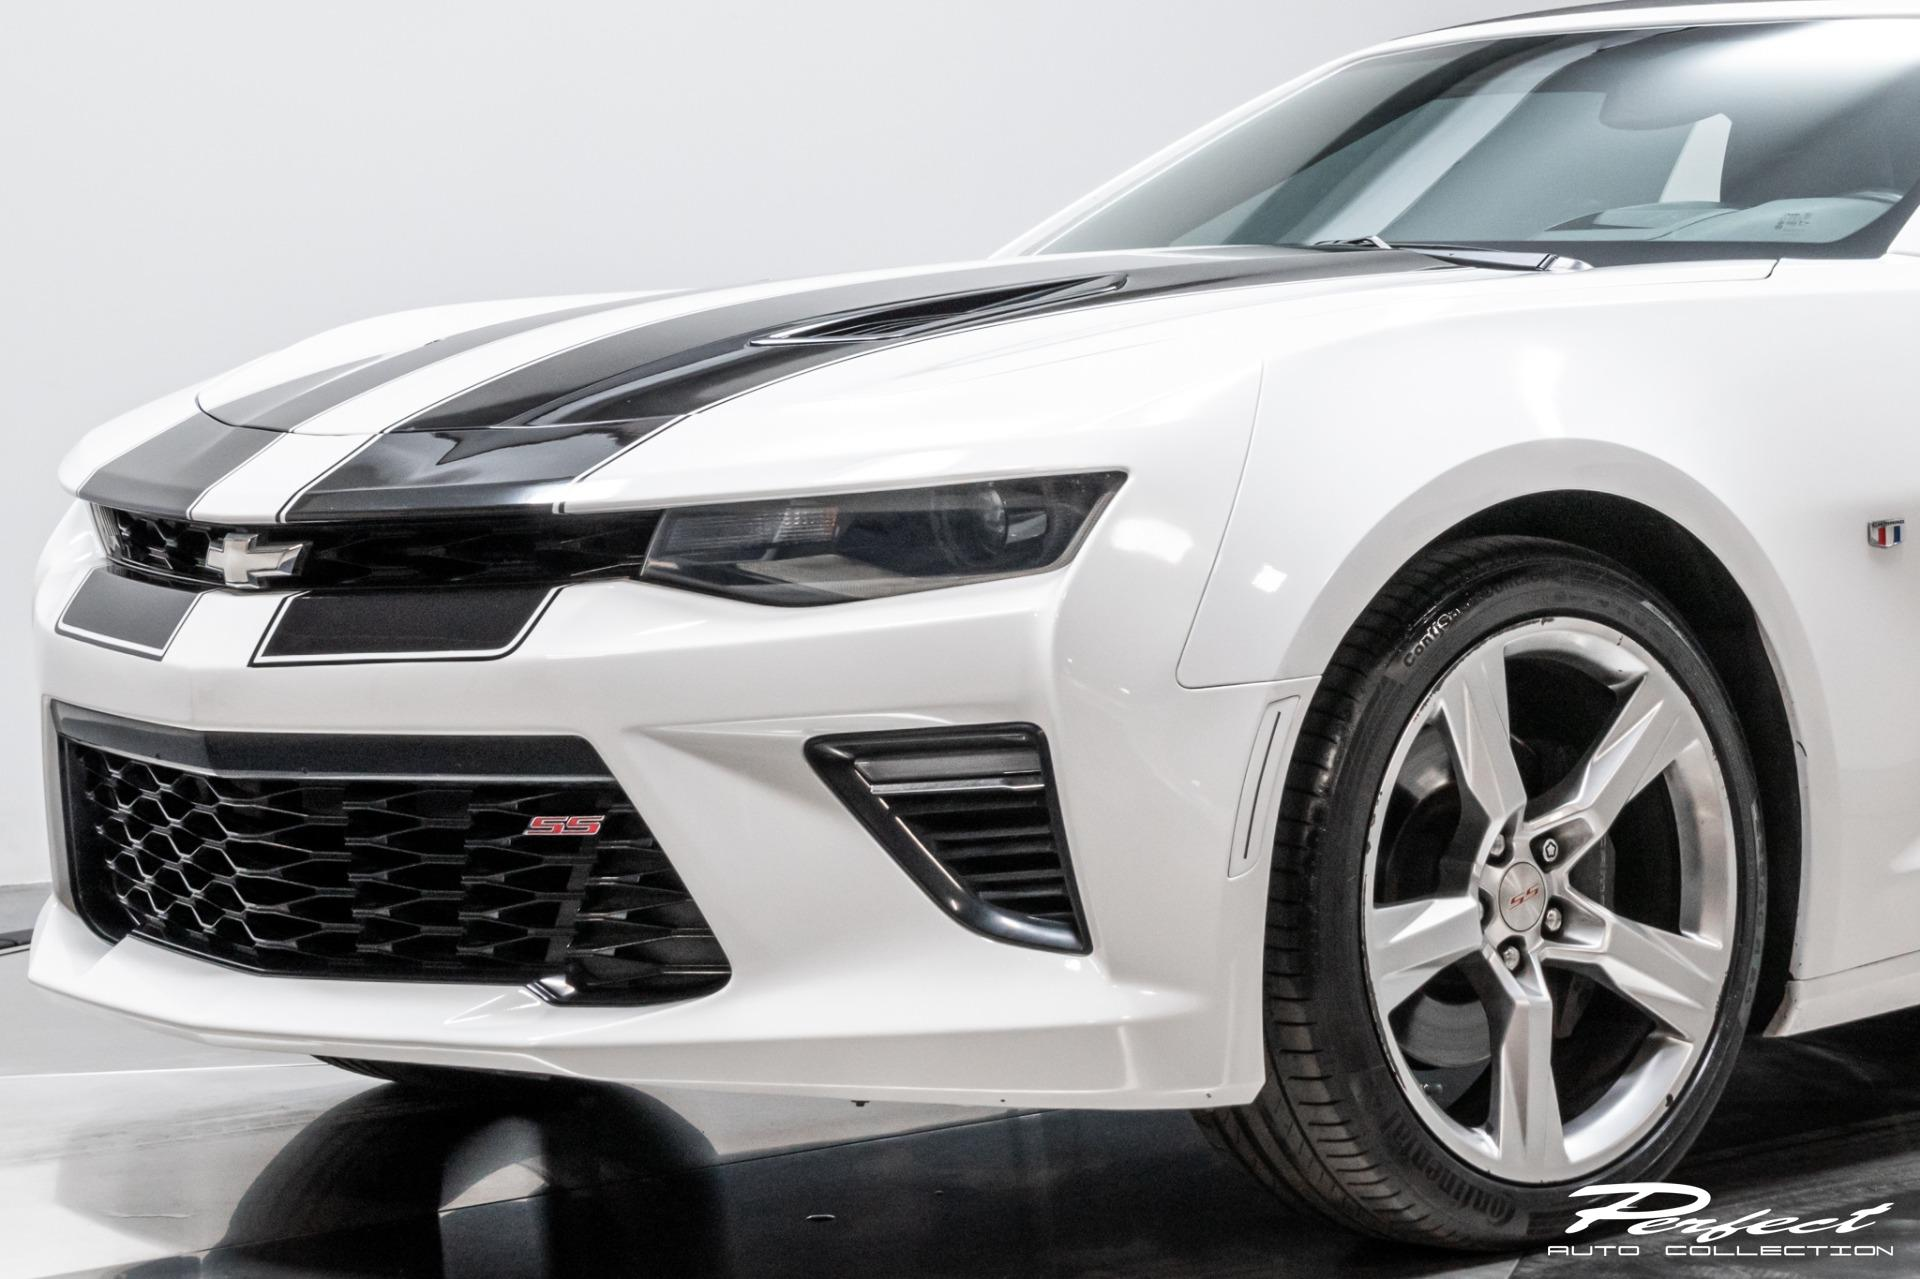 Used 2016 Chevrolet Camaro SS for sale Sold at Perfect Auto Collection in Akron OH 44310 3